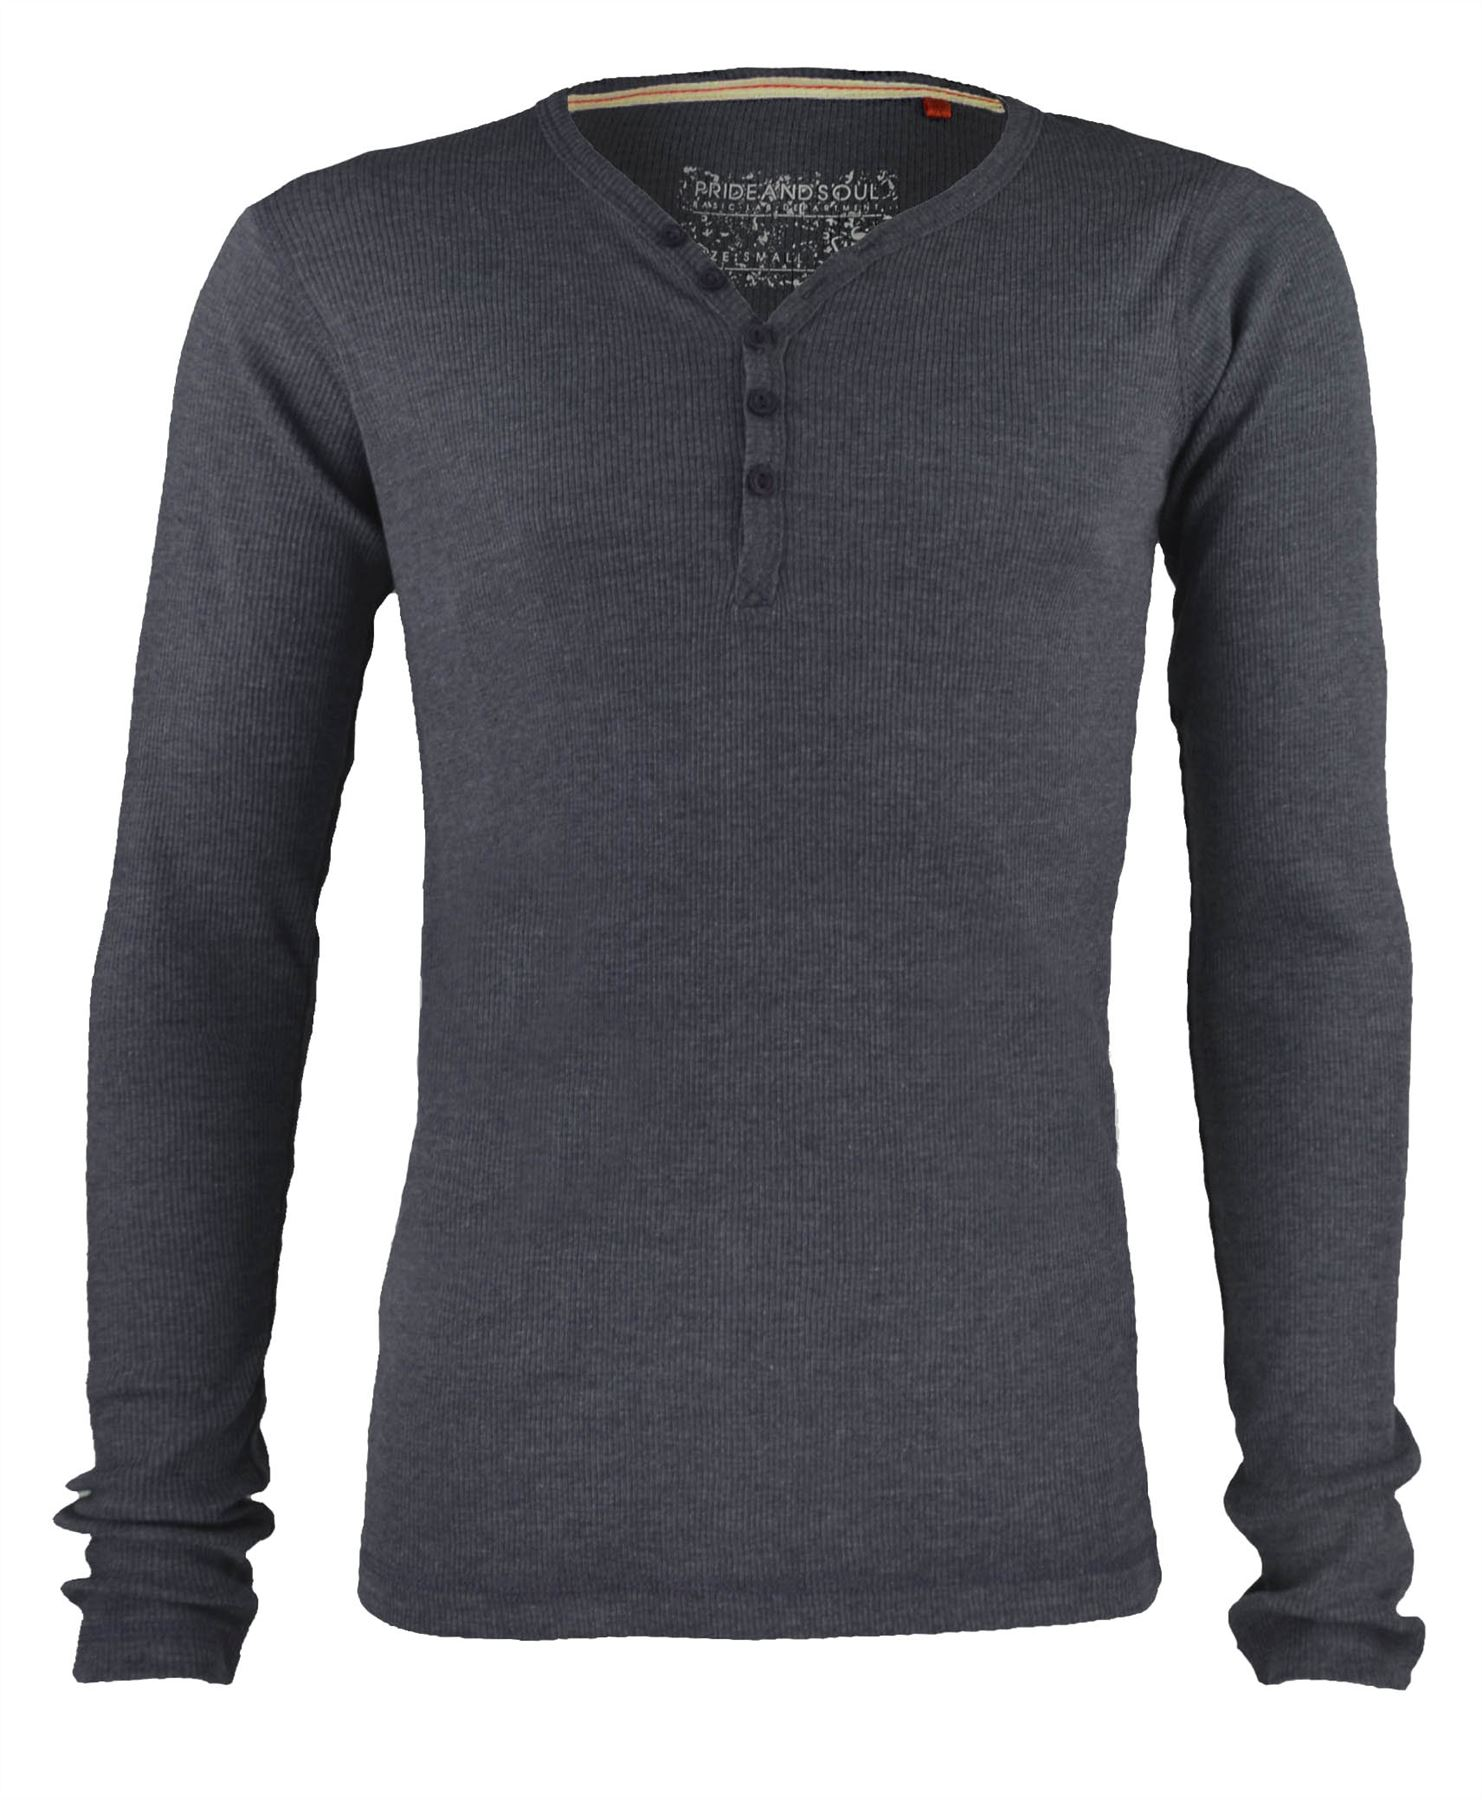 MENS V-NECK BUTTON TOP JERSEY RIBBED SWEATSHIRT LONG SLEEVE T ...